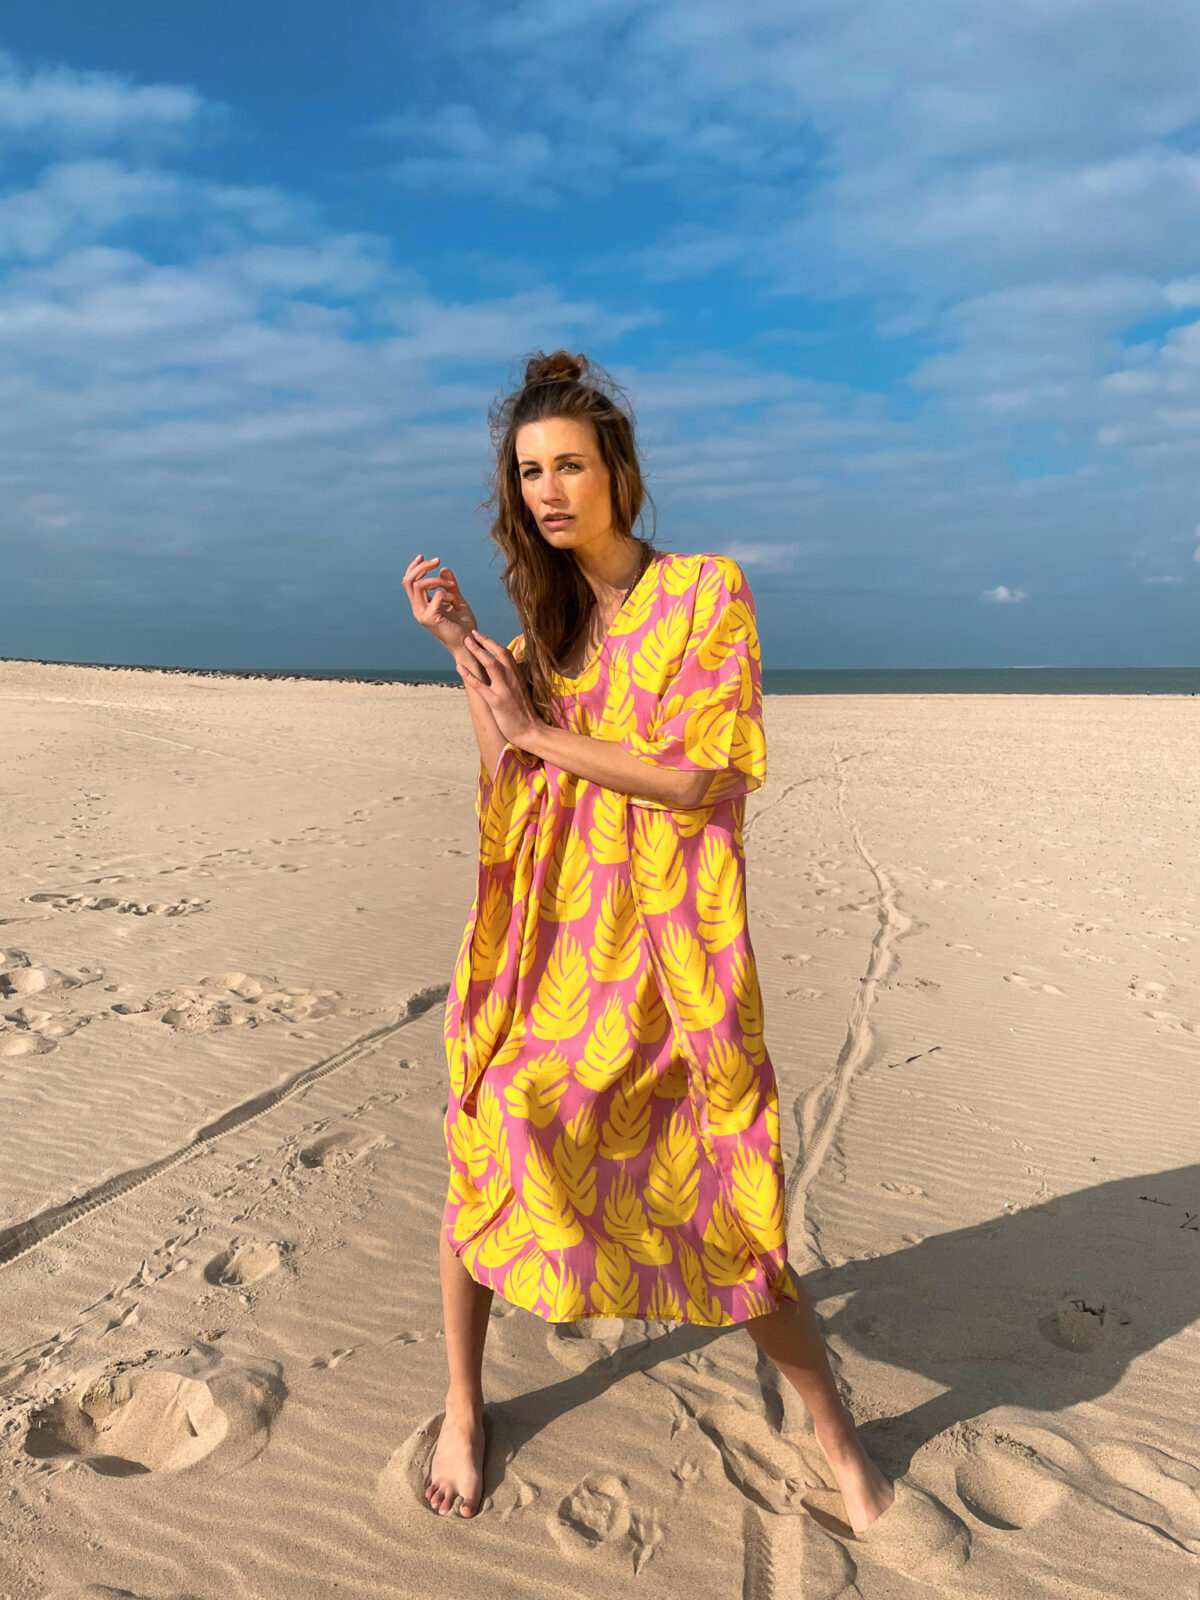 woman on the beach wearing a yellow and pink kaftandress